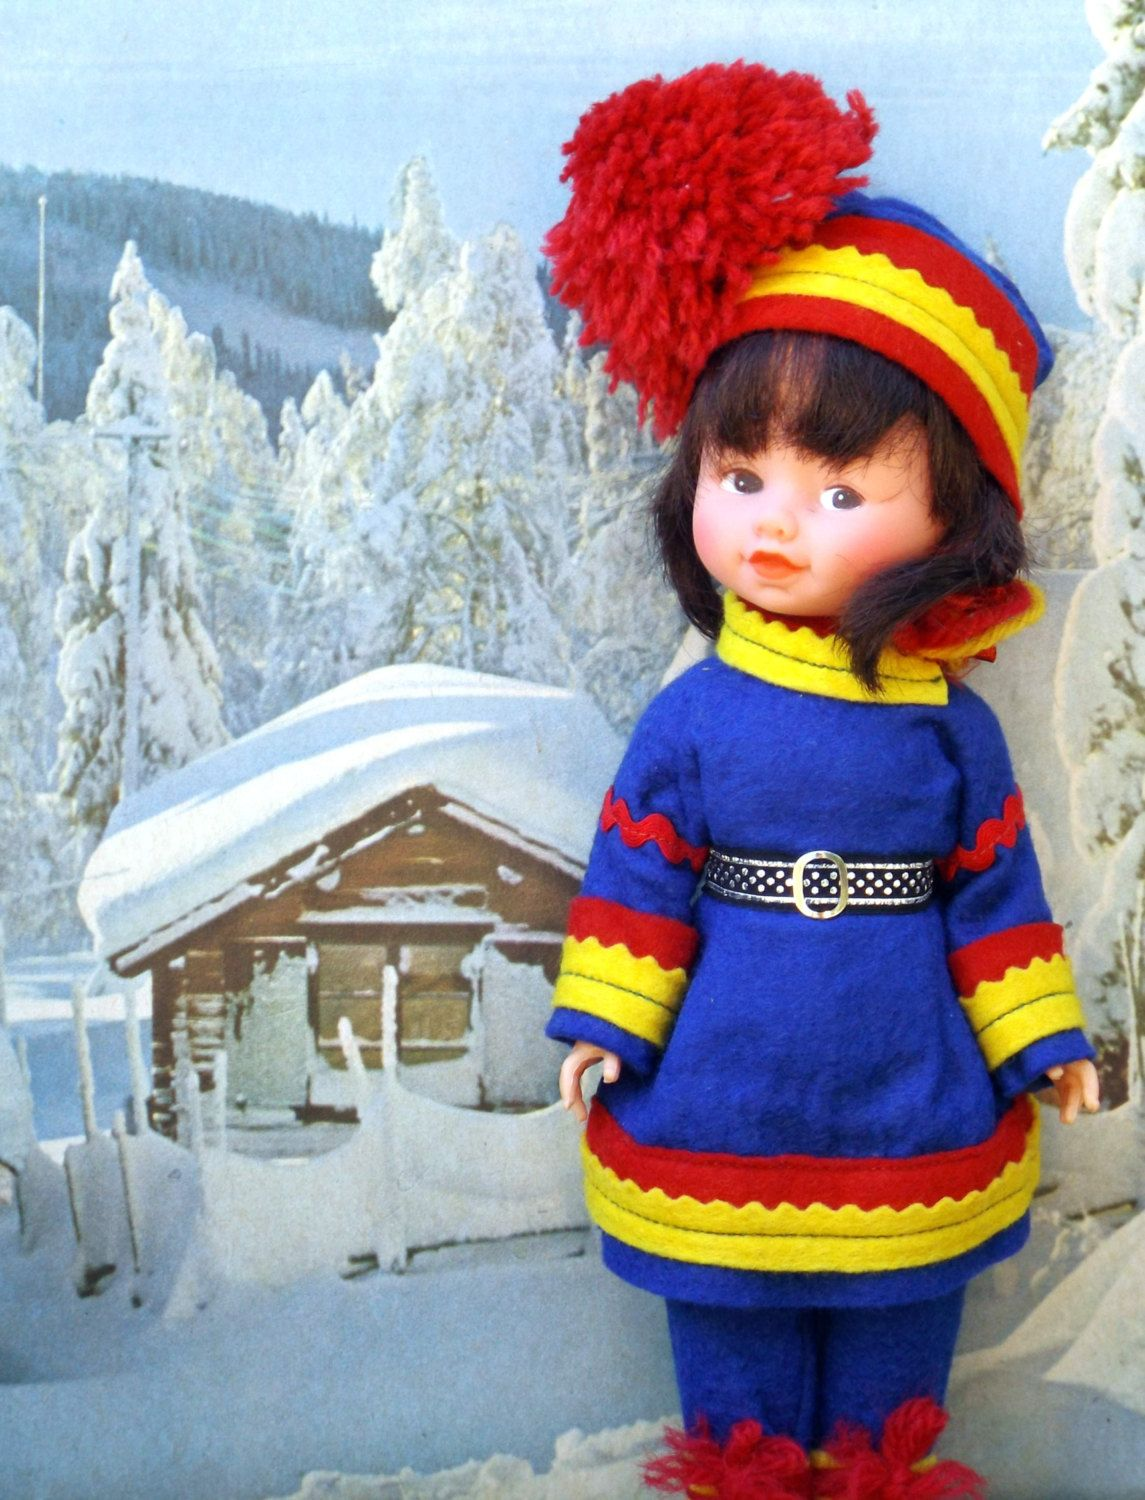 I have the ambition that orders, until 22 December, will be posted within ONE business day of purchase! (There is though NO guarantee that an order will be delivered in time for Christmas.)  Welcome to the Little Christmas Store ♥ ♥ ♥ ♥ ♥ ♥ ♥ ♥ ♥ ♥ Vintage Sami doll in traditional costume. Around 1970s, Scandinavian. Sami people have lived in an area now known as Norway, Sweden and Finland for at least 5,000 years. In very good vintage condition.  Measures 11.5 (29 cm) tall Weight 0.24 lbs…